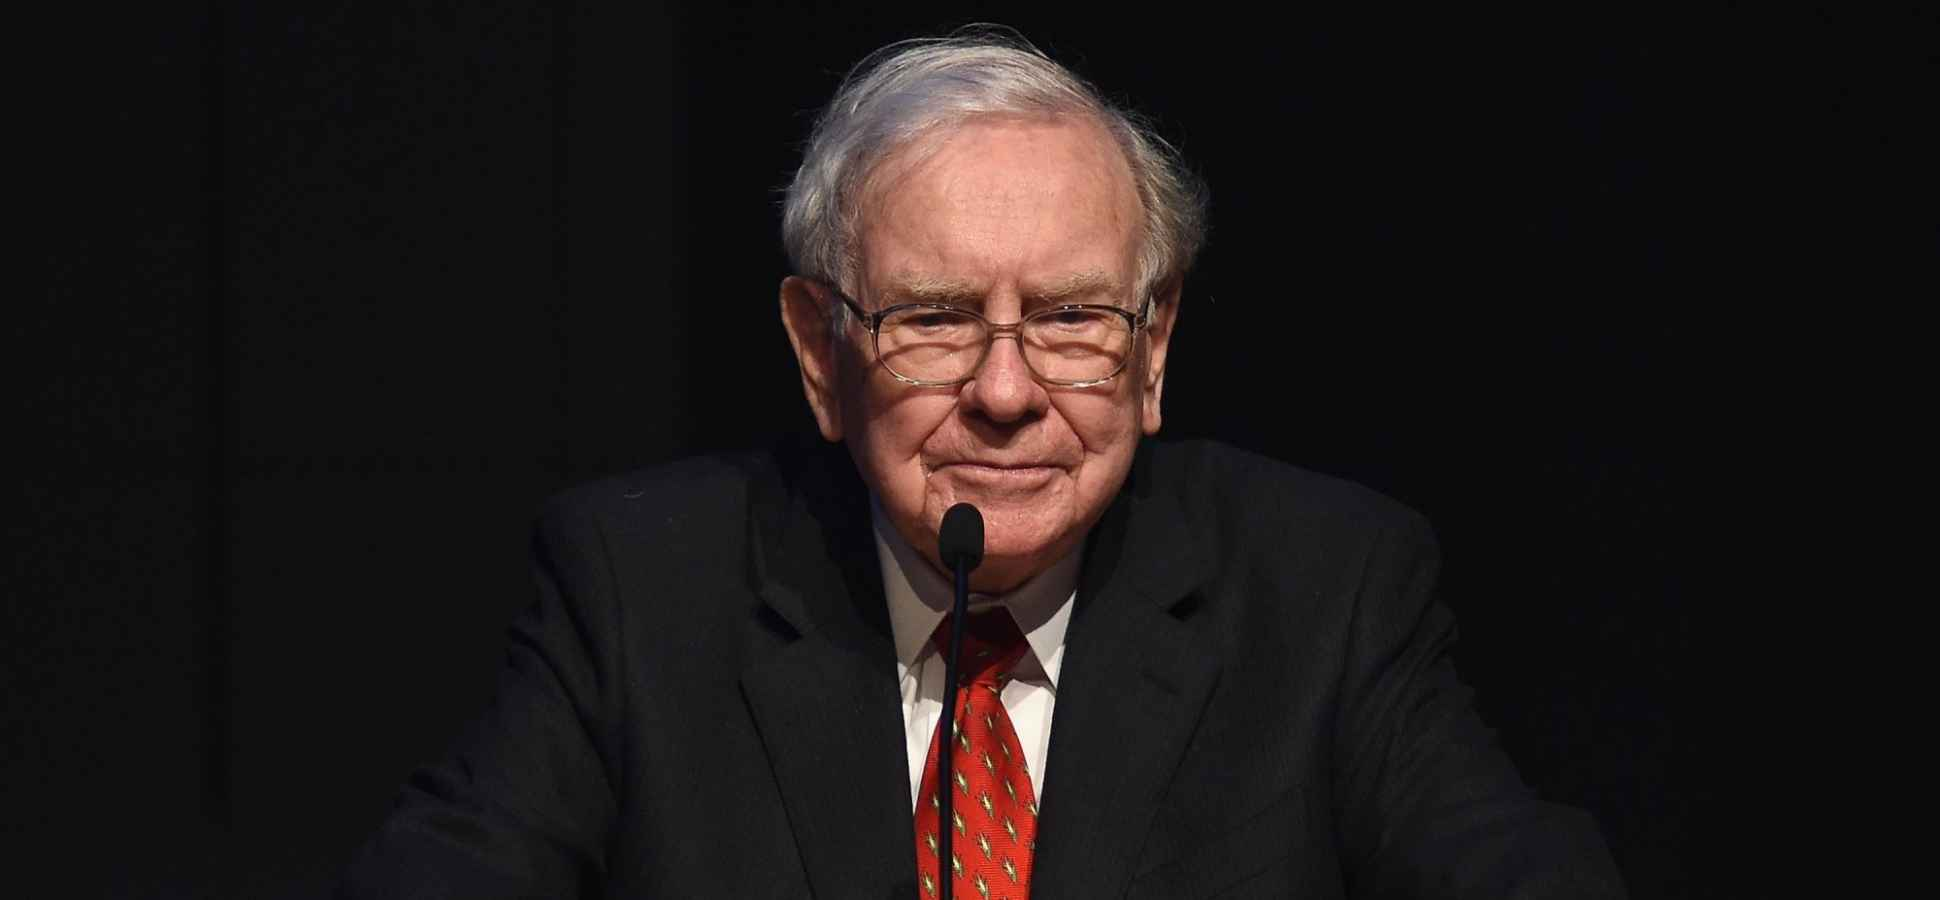 3 Killer Persuasion Techniques You Can Learn From Billionaire Warren Buffett